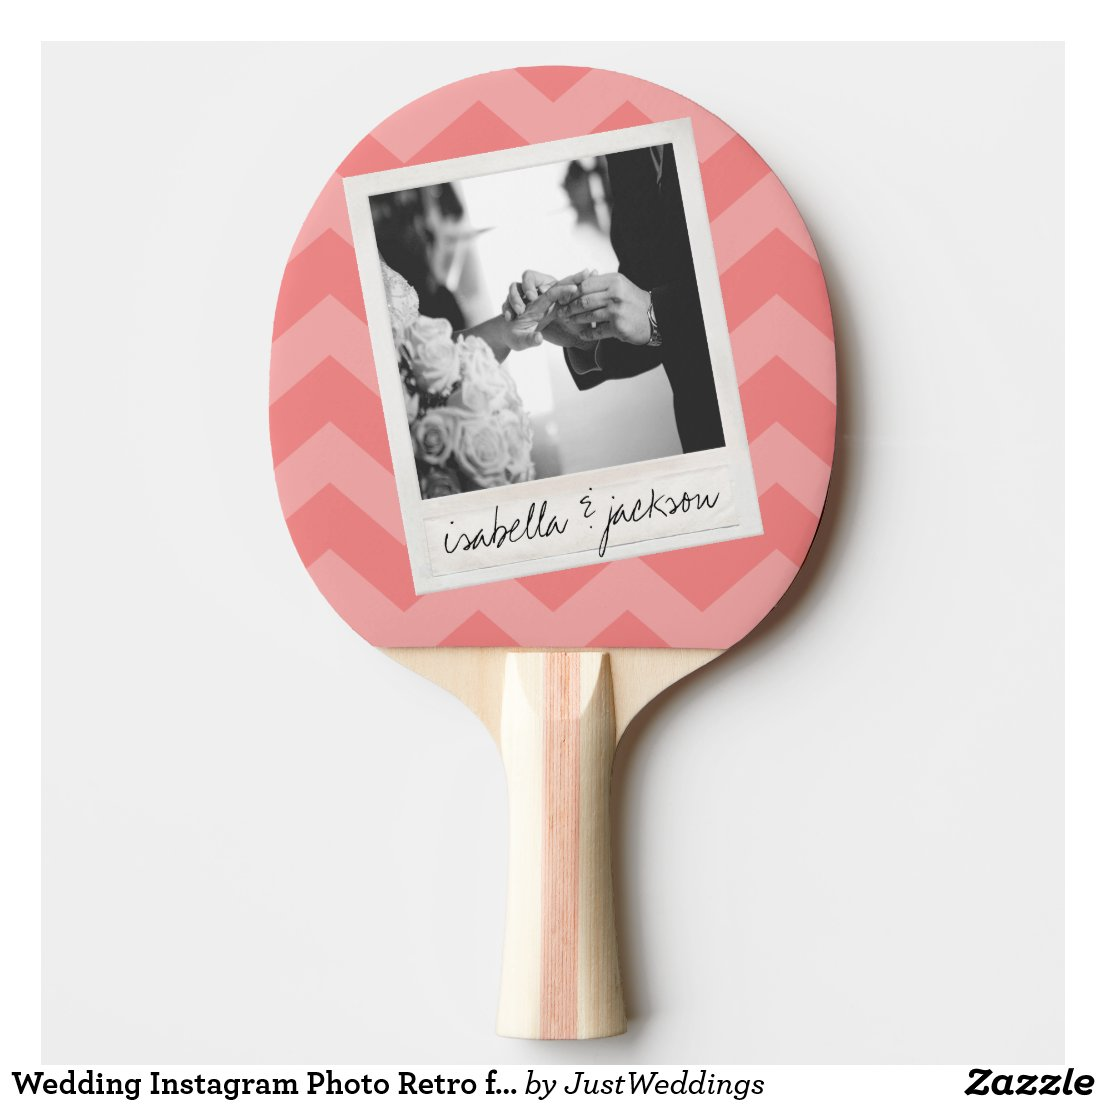 Wedding Instagram Photo Retro frame Custom Text Ping Pong Paddle